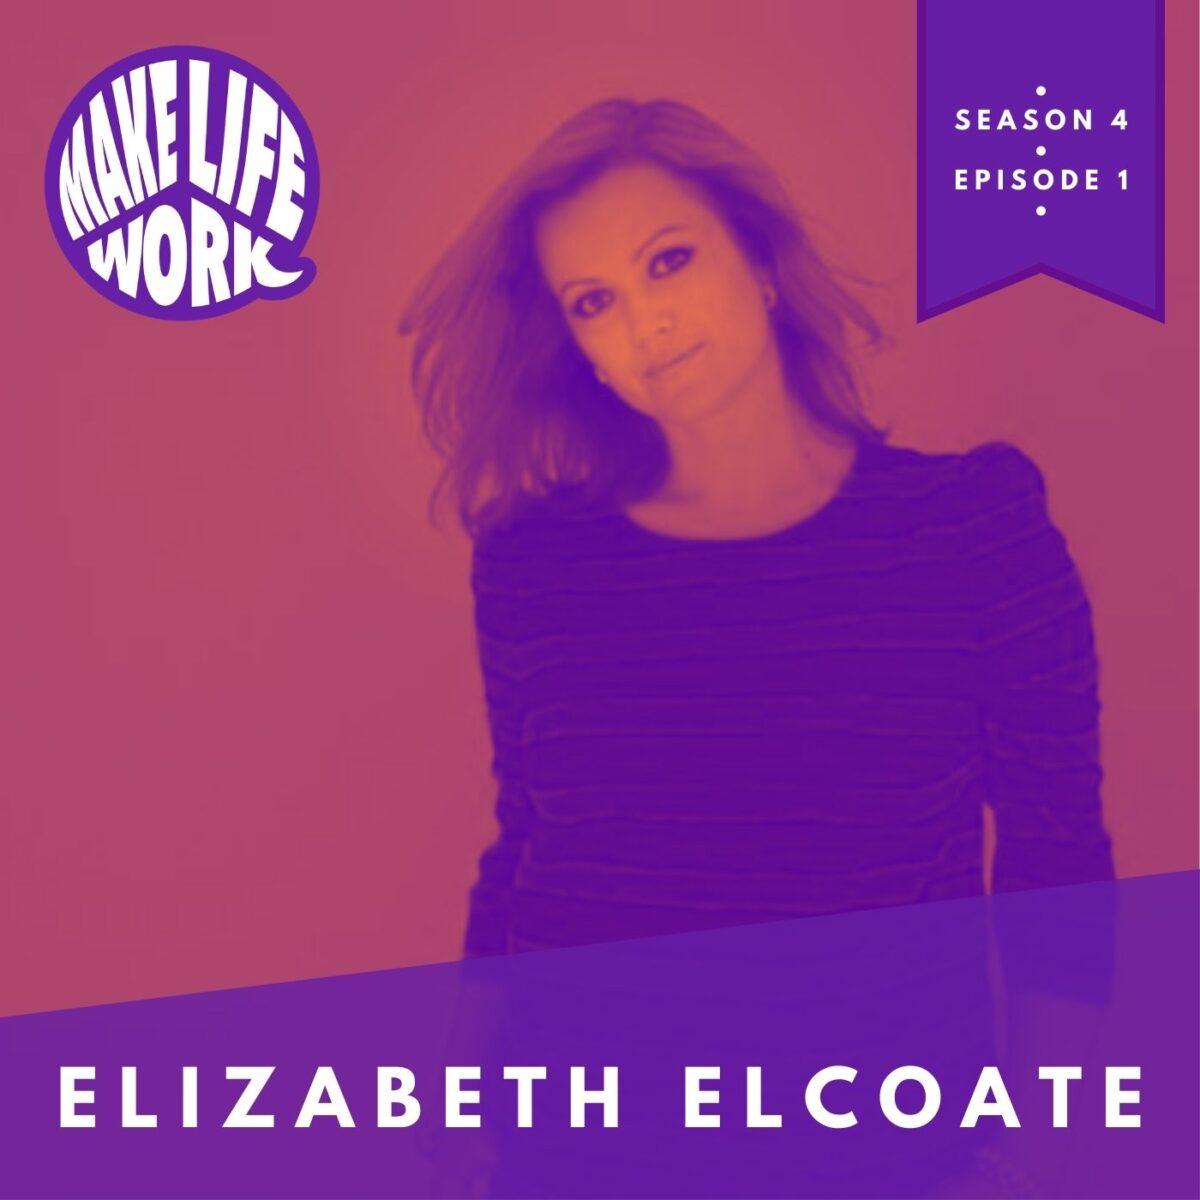 Make Life Work with Elizabeth Elcoate